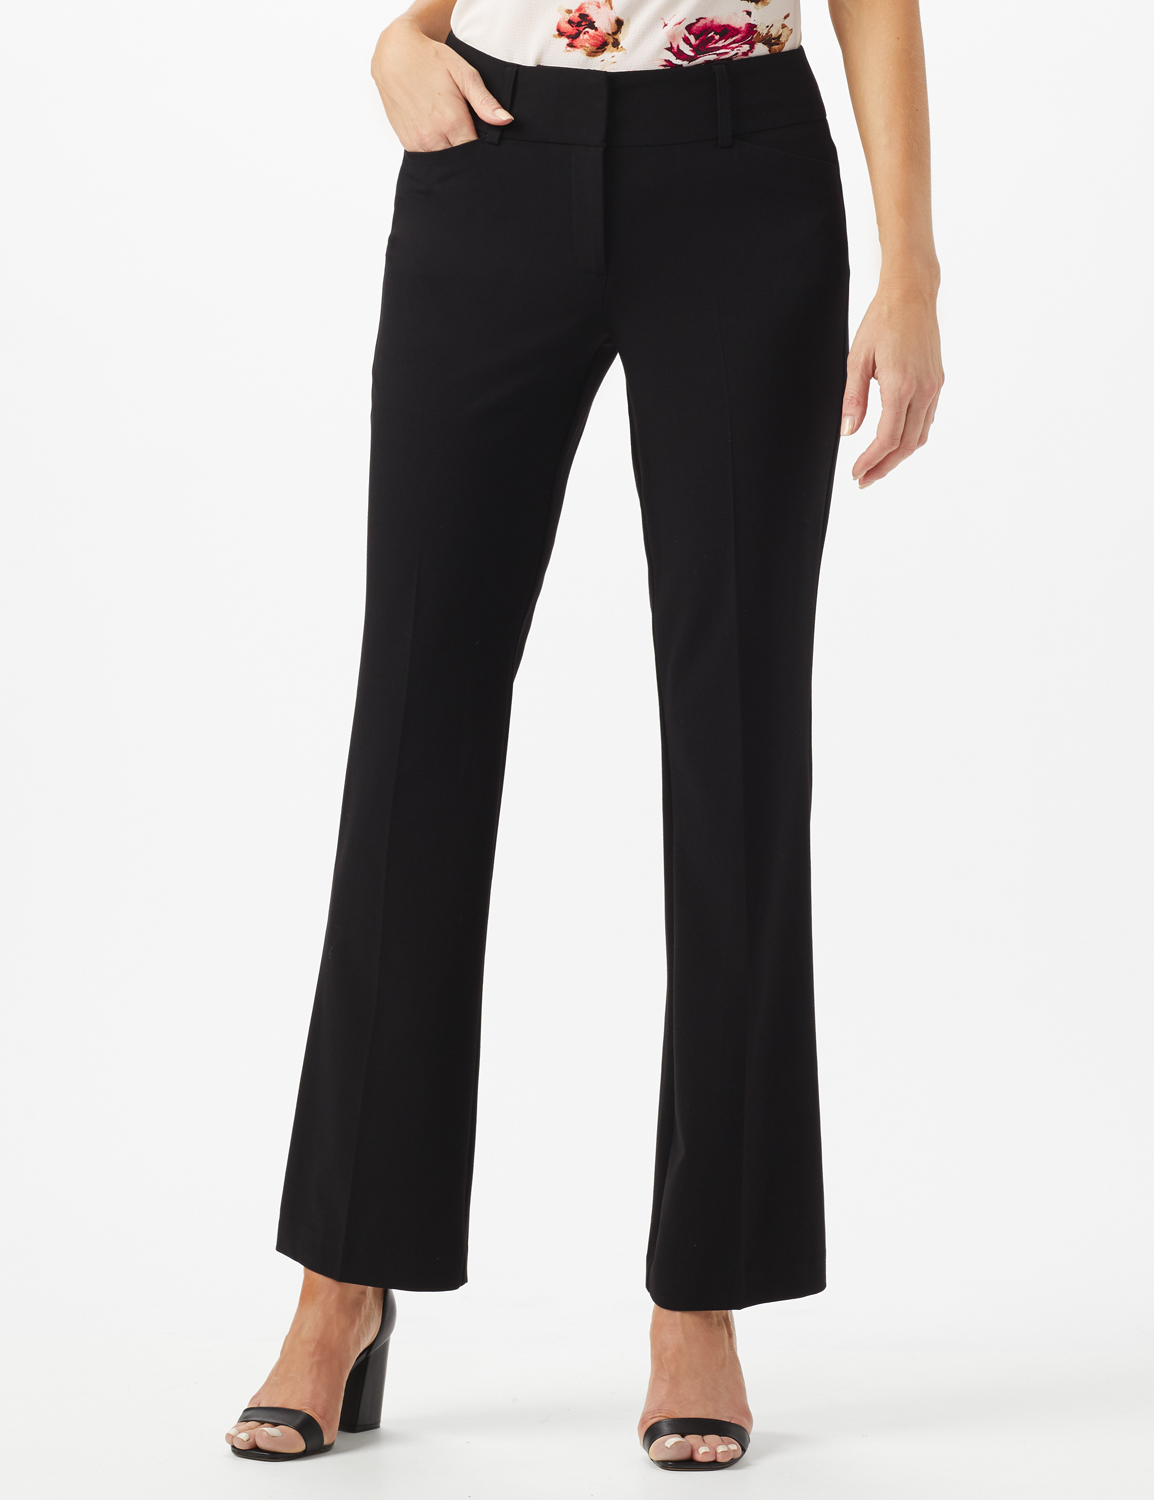 Roz & Ali  SECRET AGENT TROUSER WITH CATEYE POCKET & ZIP -Black - Front